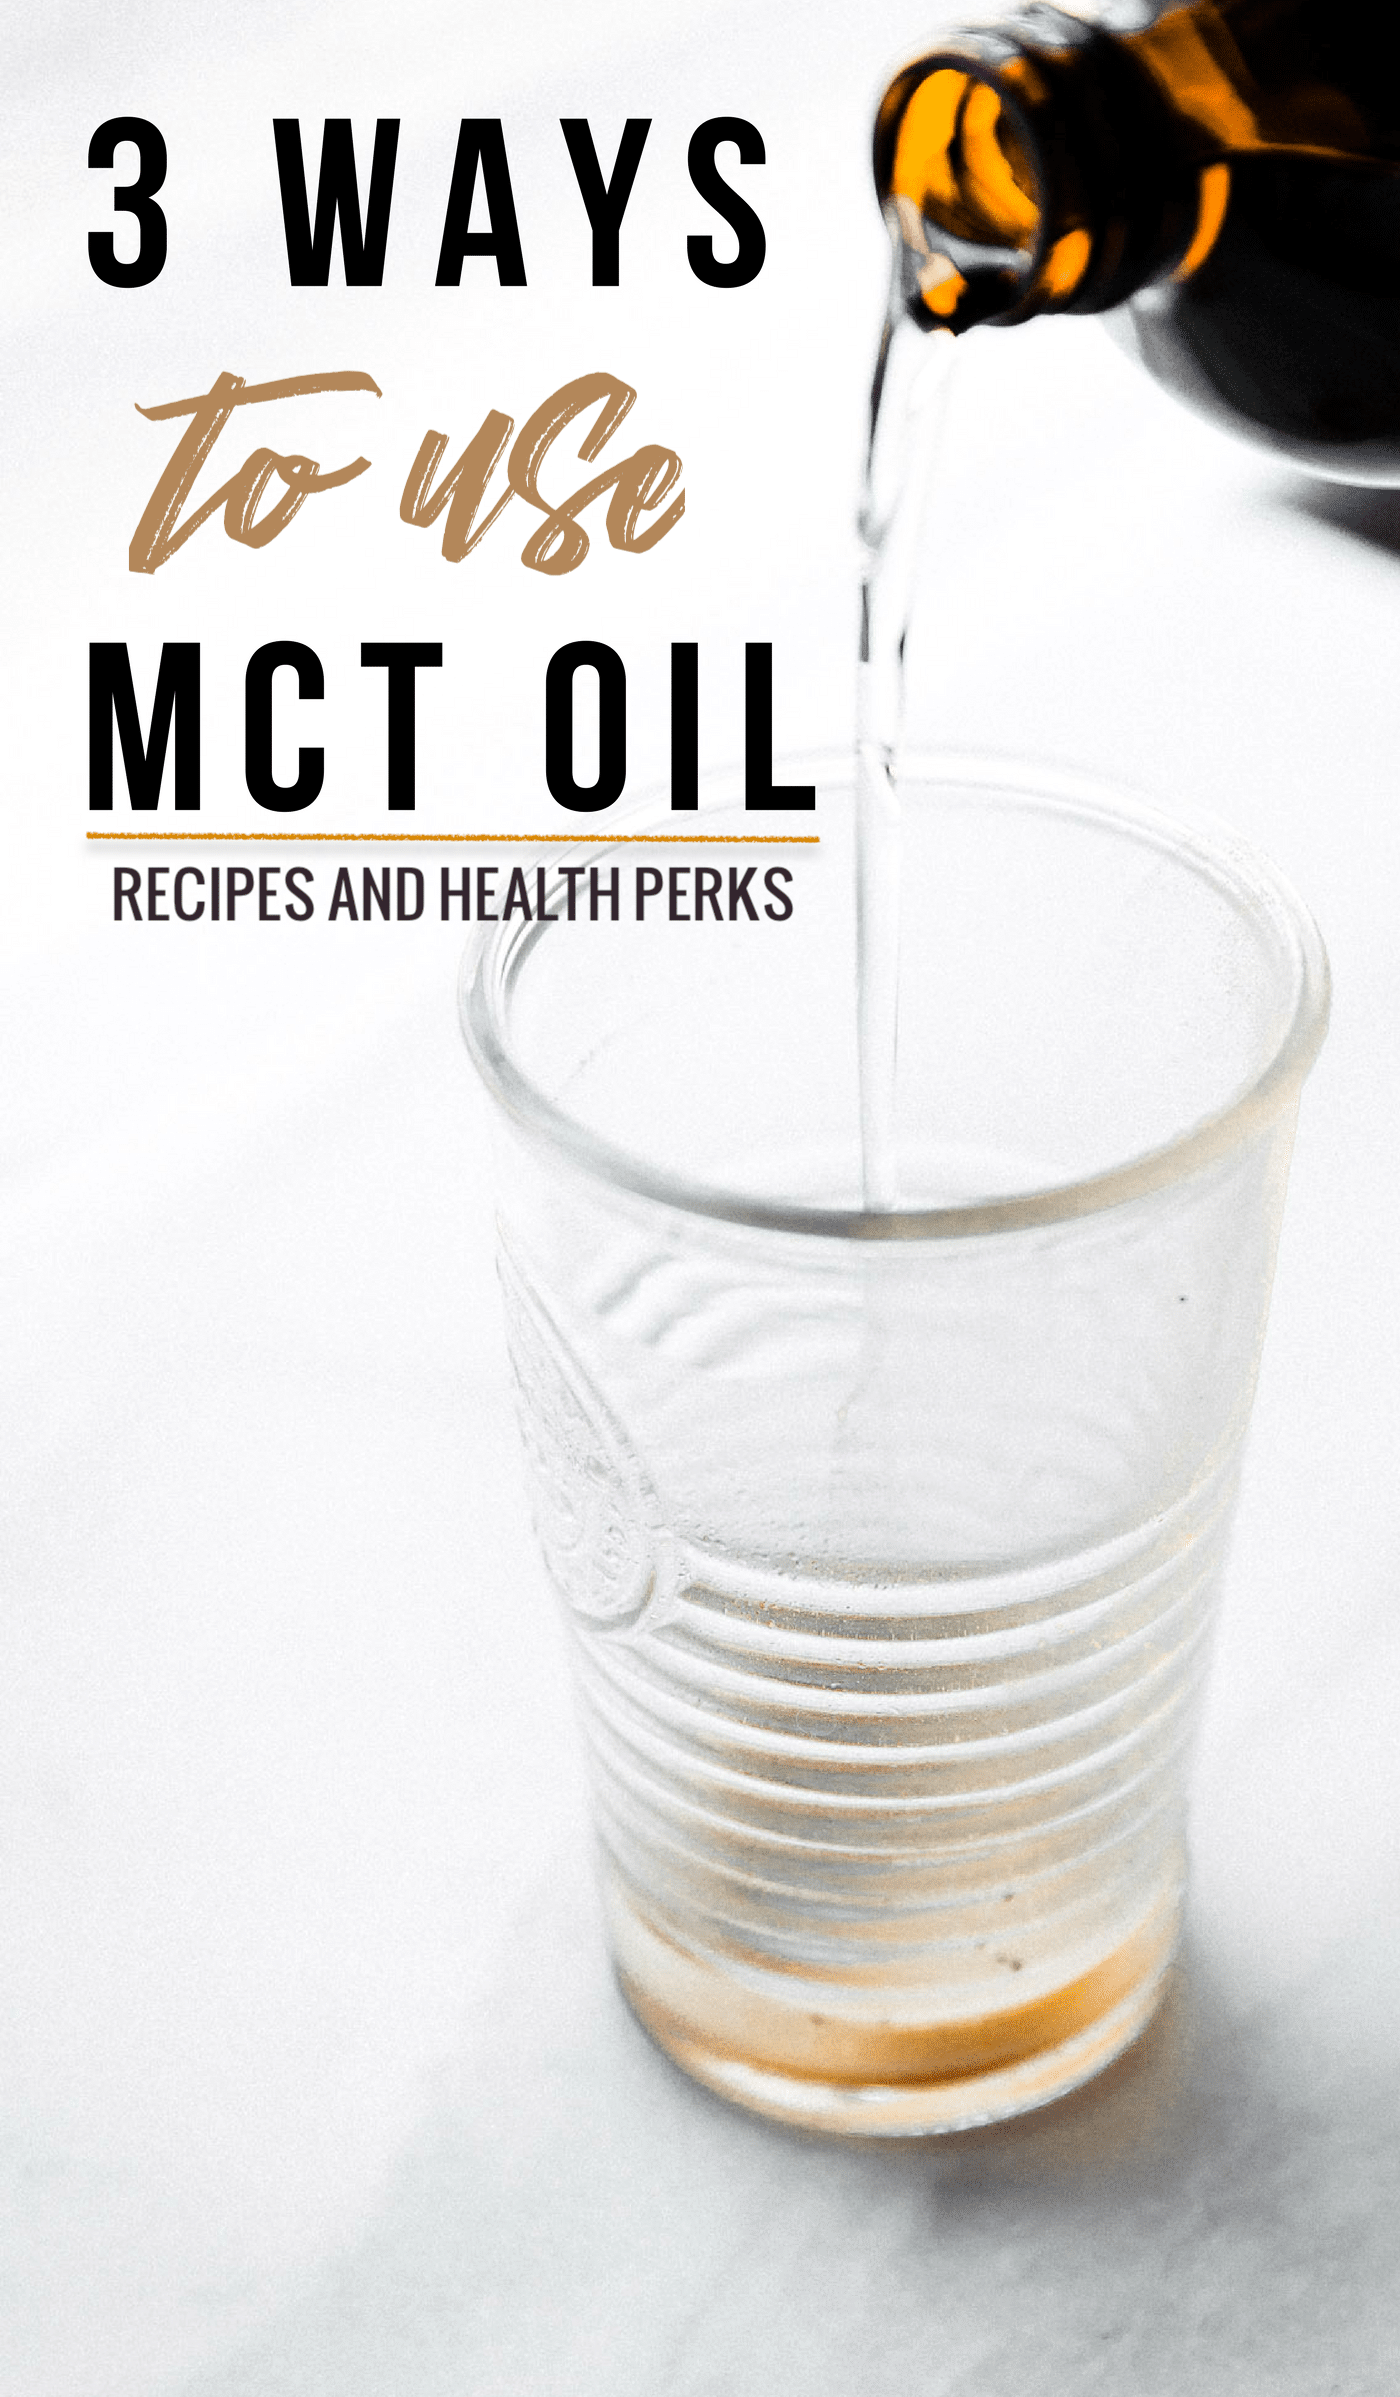 What is MCT oil? Learn more about this beneficial saturated fat, 3 ways to use MCT Oil, and how to Incorporate MCT Oil Into Your Daily the diet. This Includes health benefits of MCT oil, recipes to try, plus quality MCT oil supplements. You'll love the butter-less iced bulletproof coffee latte recipe!#paleo #vegan #nutrition #healthy